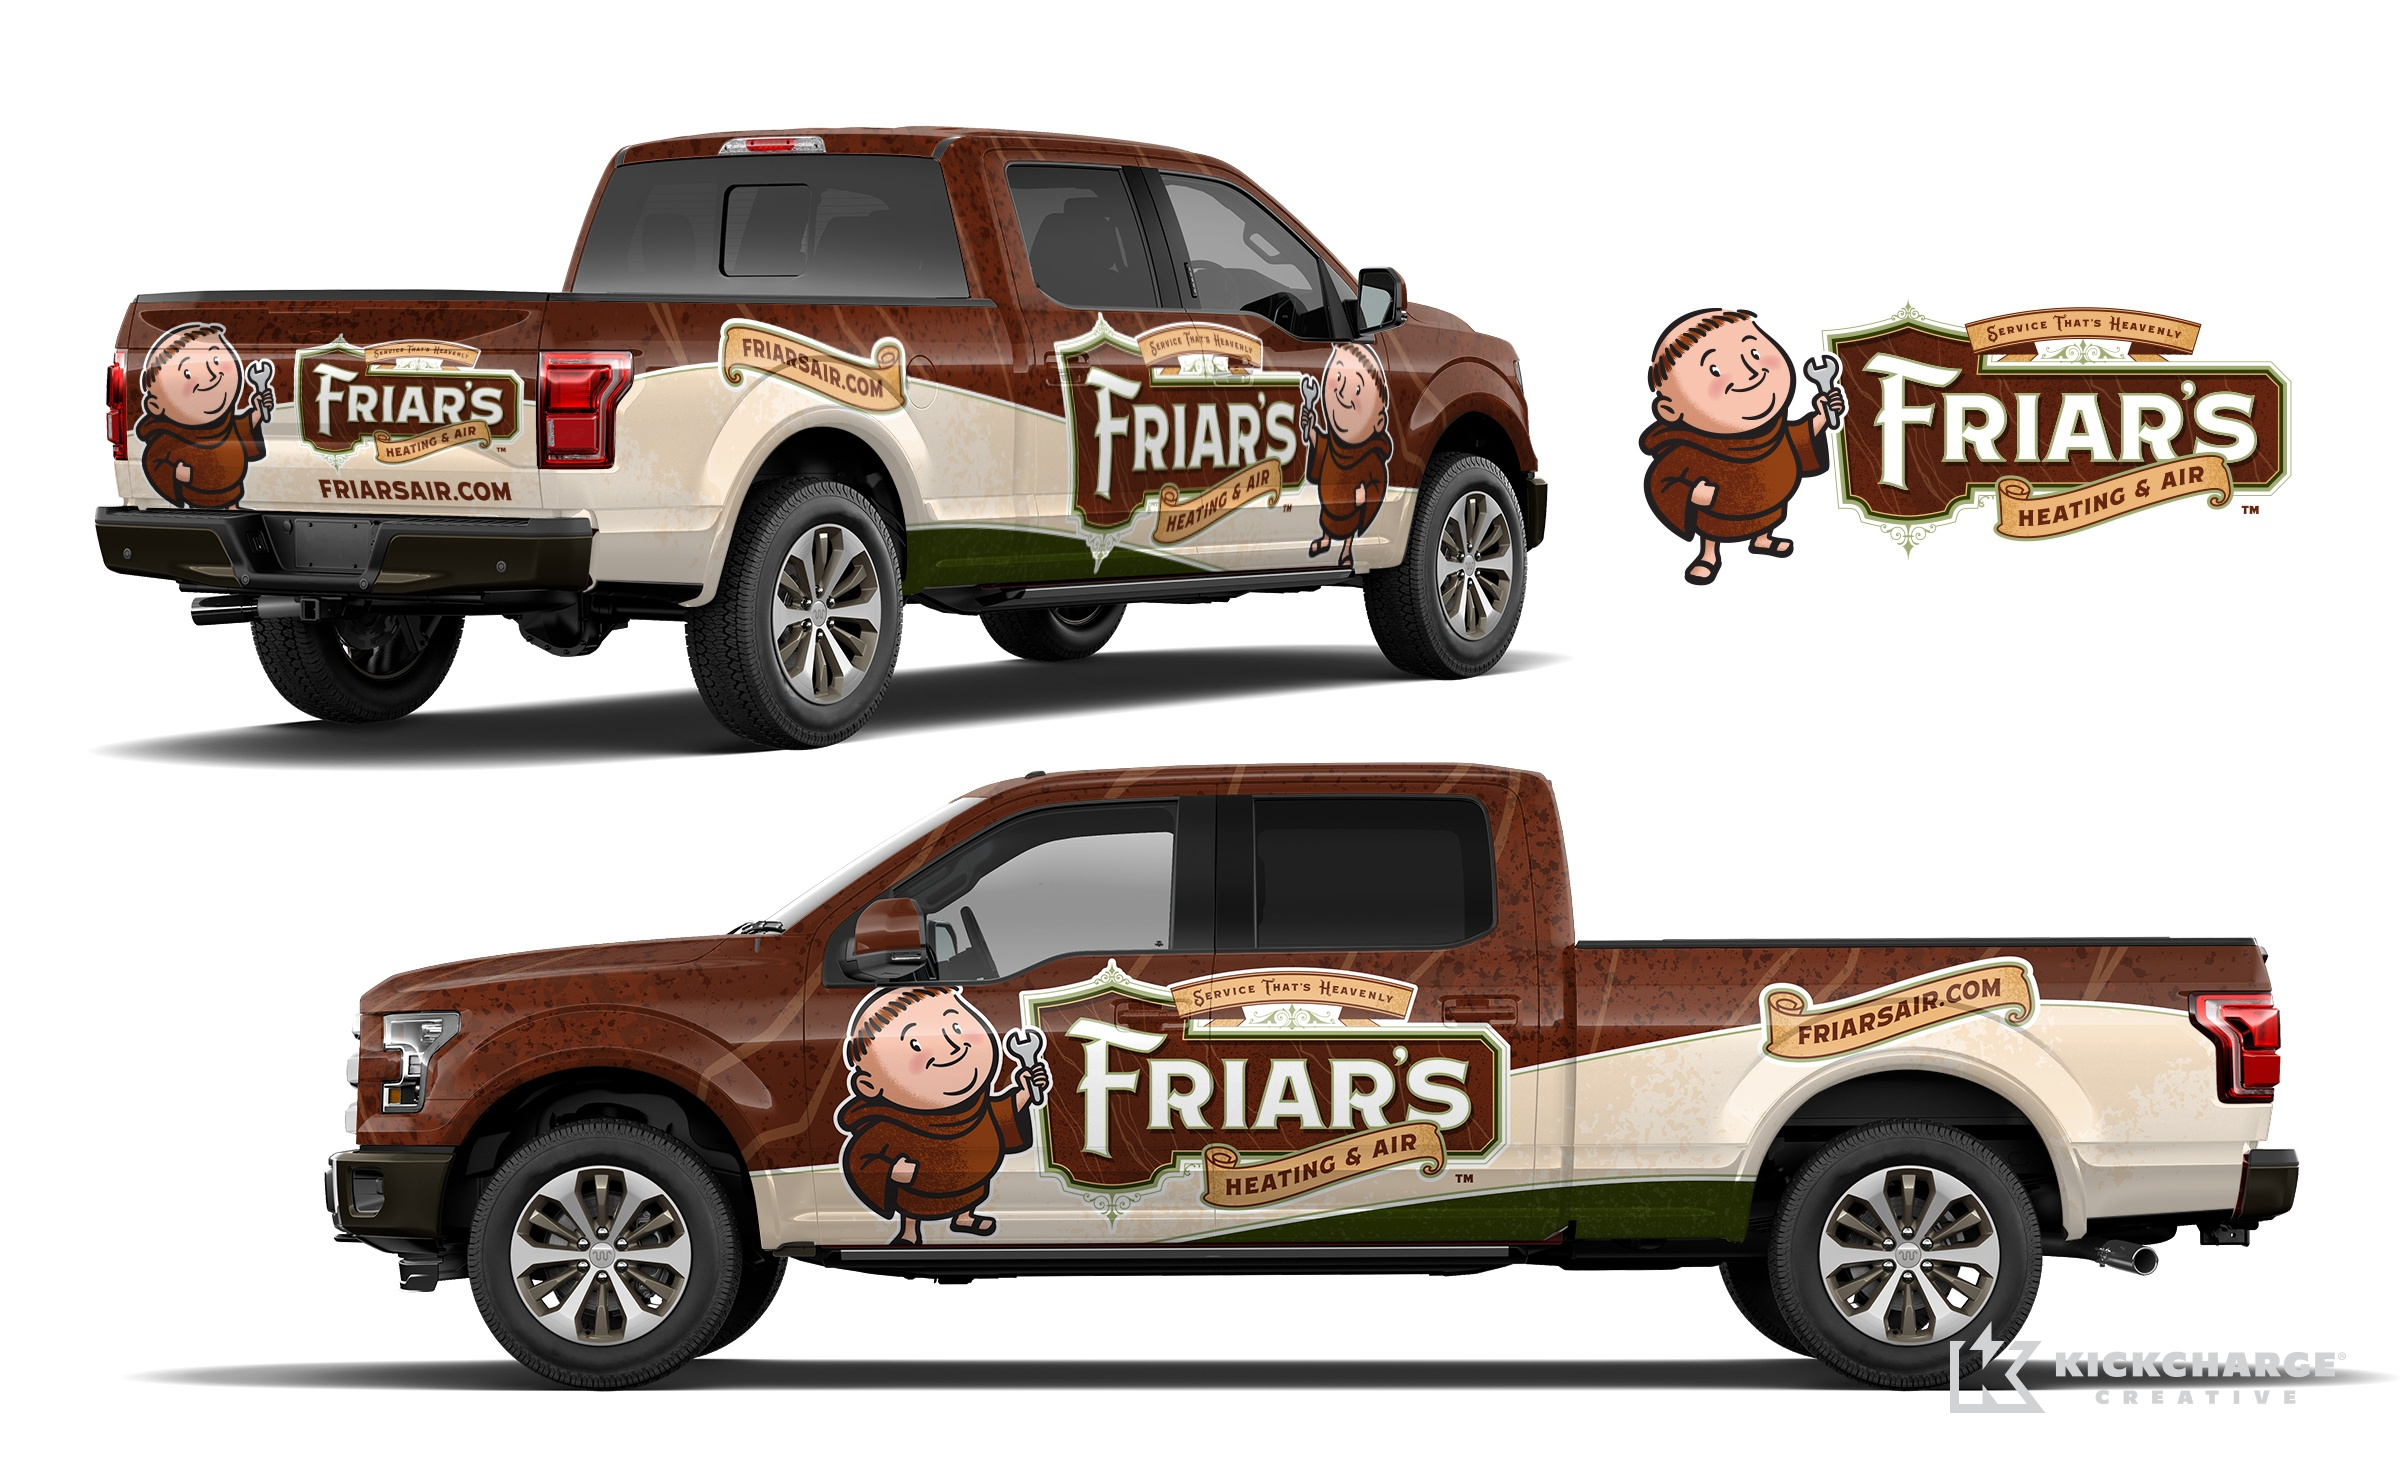 Friar's Heating & Air